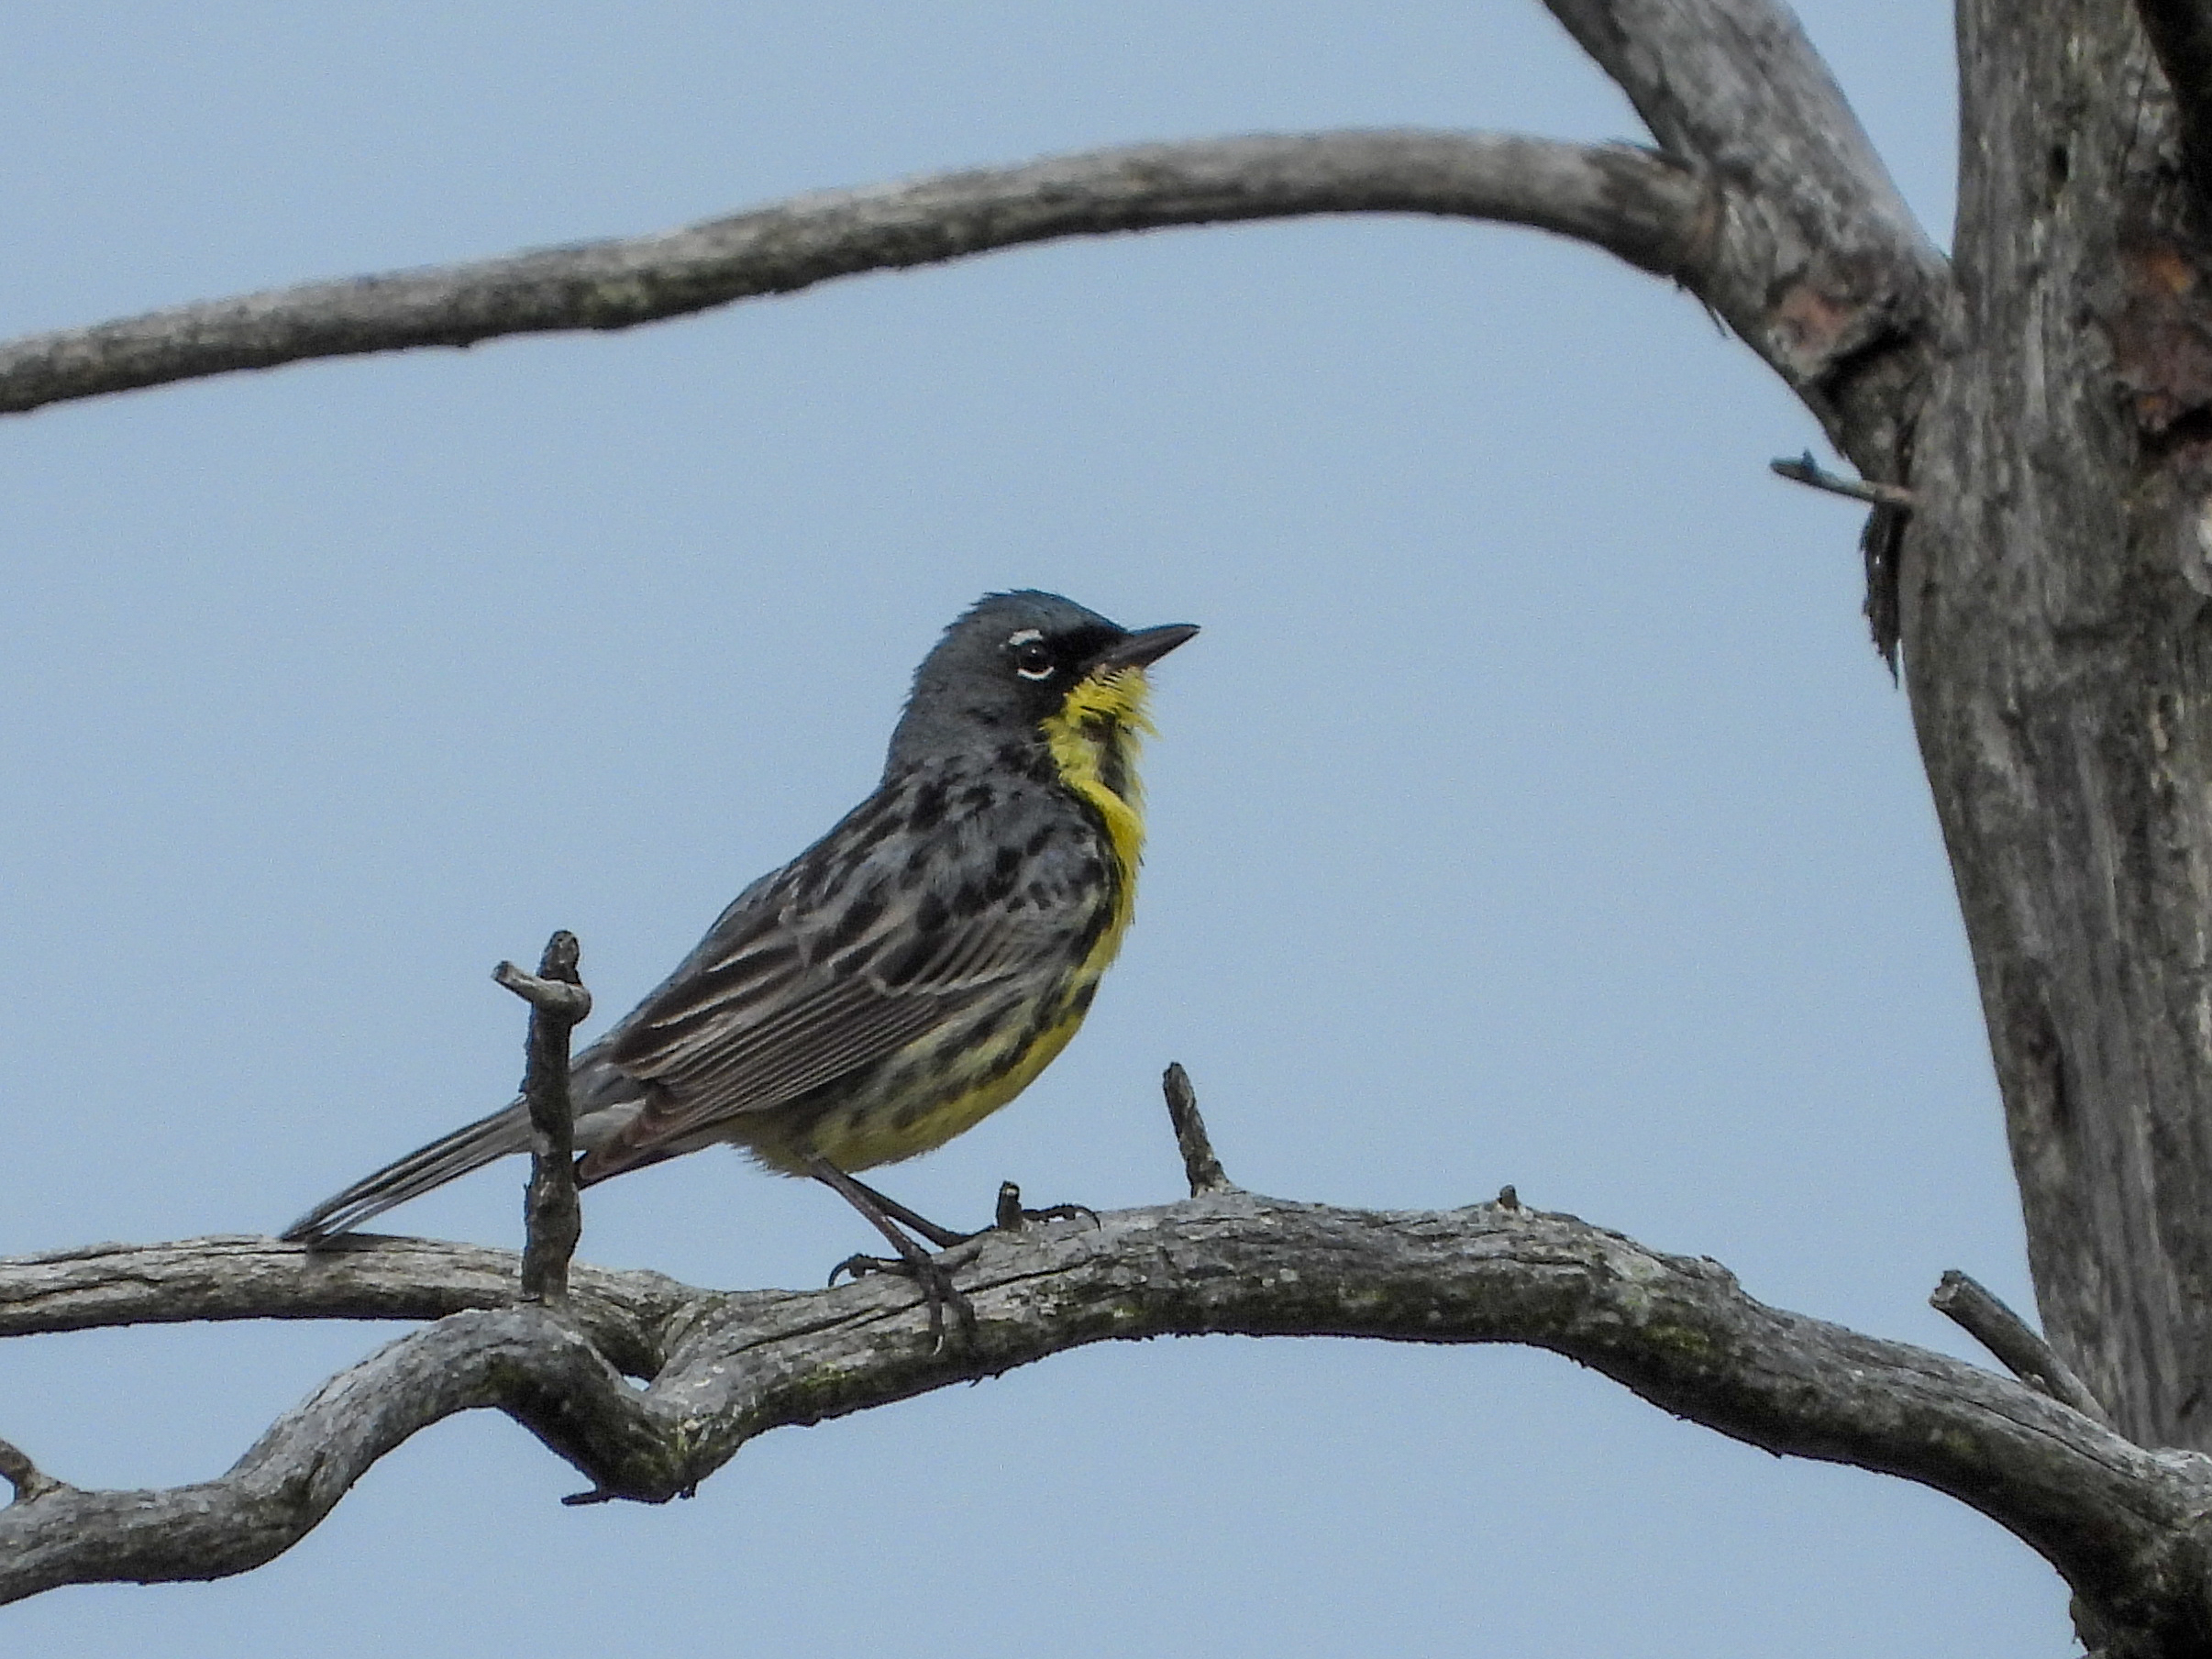 One of the 12 male endangered Kirtland's Warblers seen in their protected habitat in Iosco County, Mich. Photo credit: Sam Burckhardt